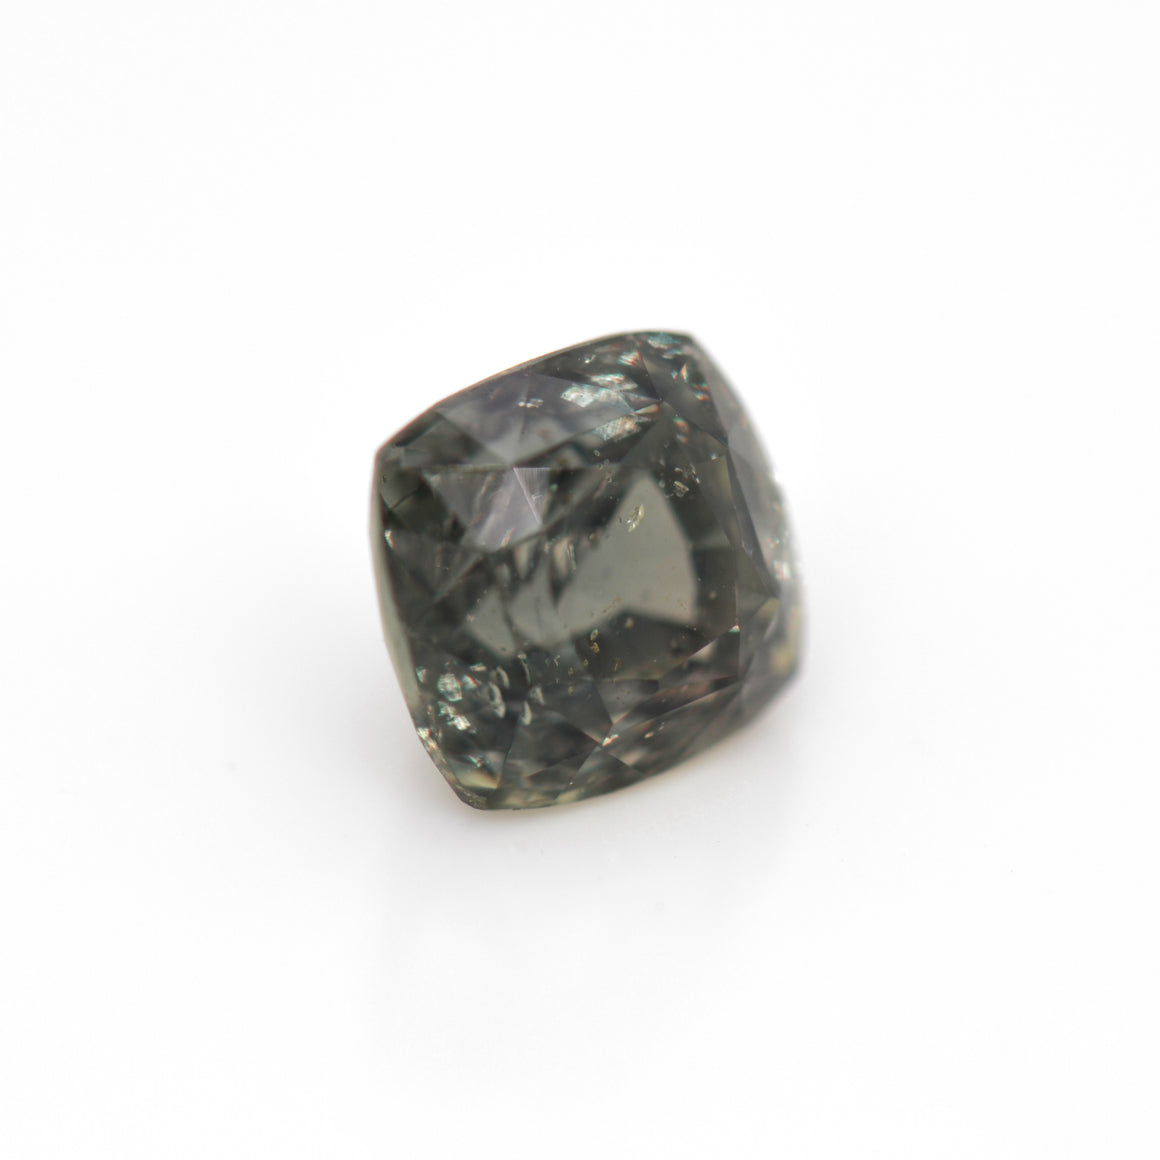 2.80 Carat Color Change Blue to Green Sapphire